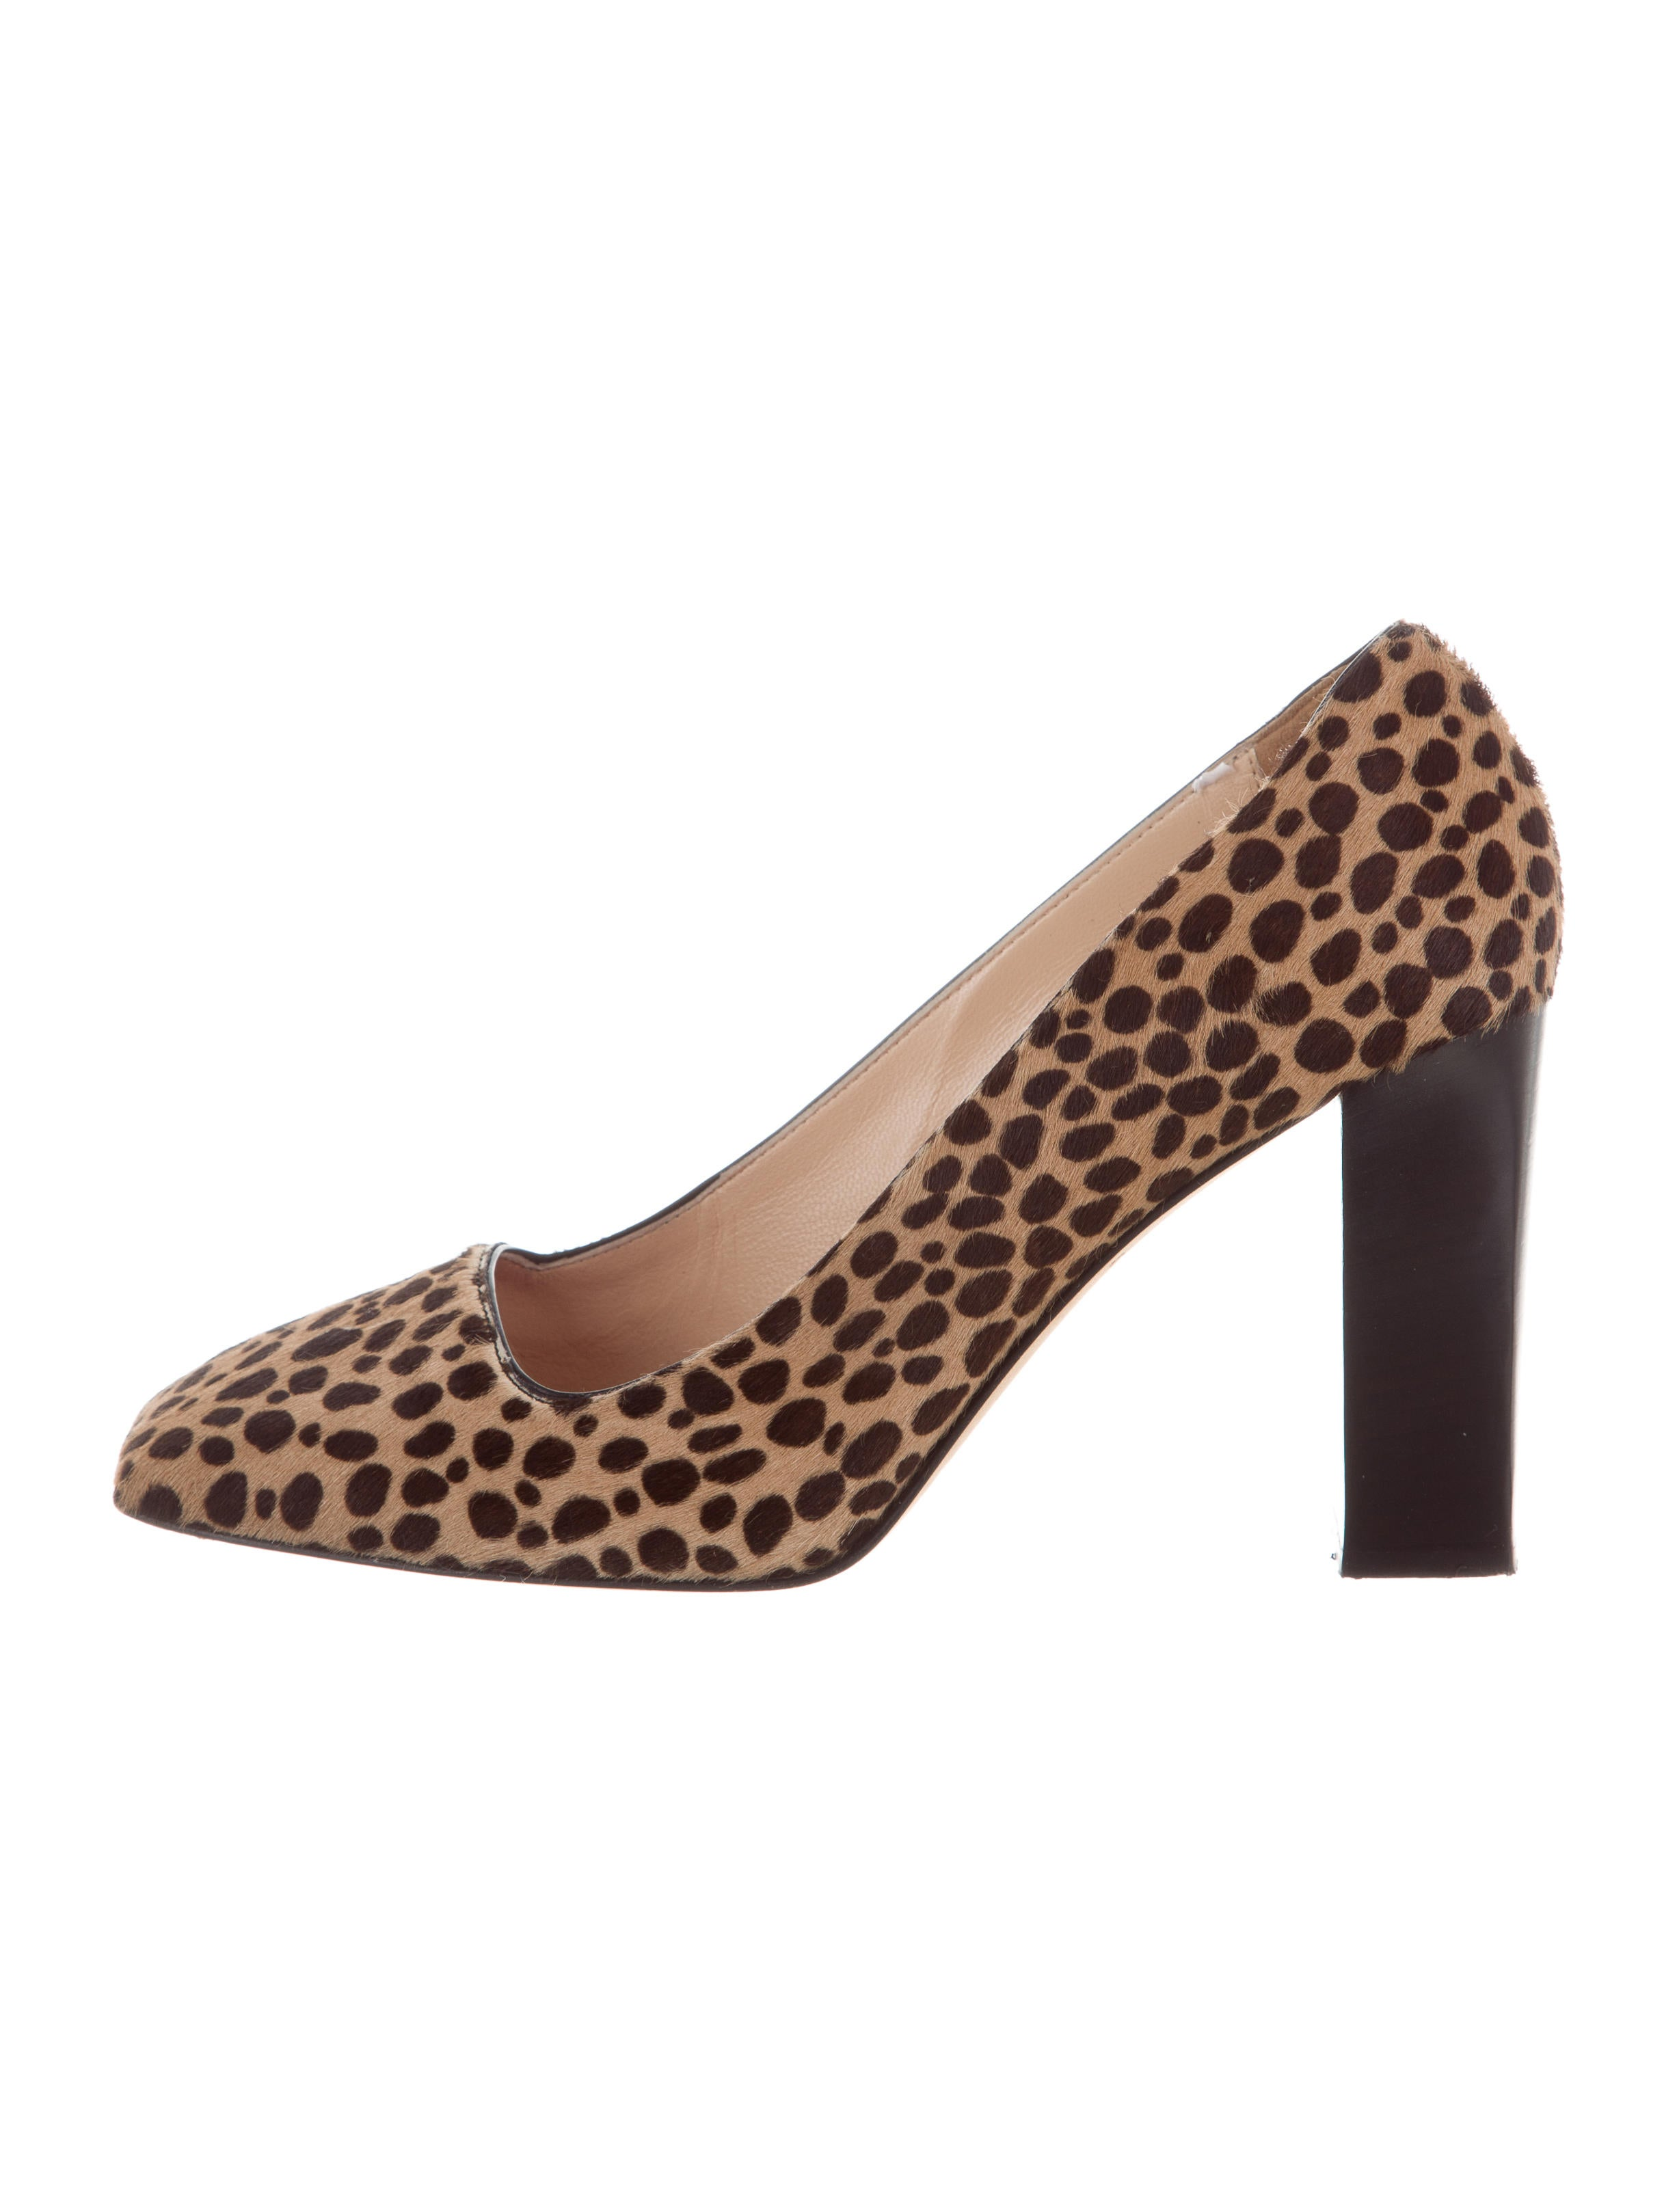 Kate Spade New York Animal Print Ponyhair Pumps original cheap price cheap 2014 outlet best place footaction sale online 7191c7PiI